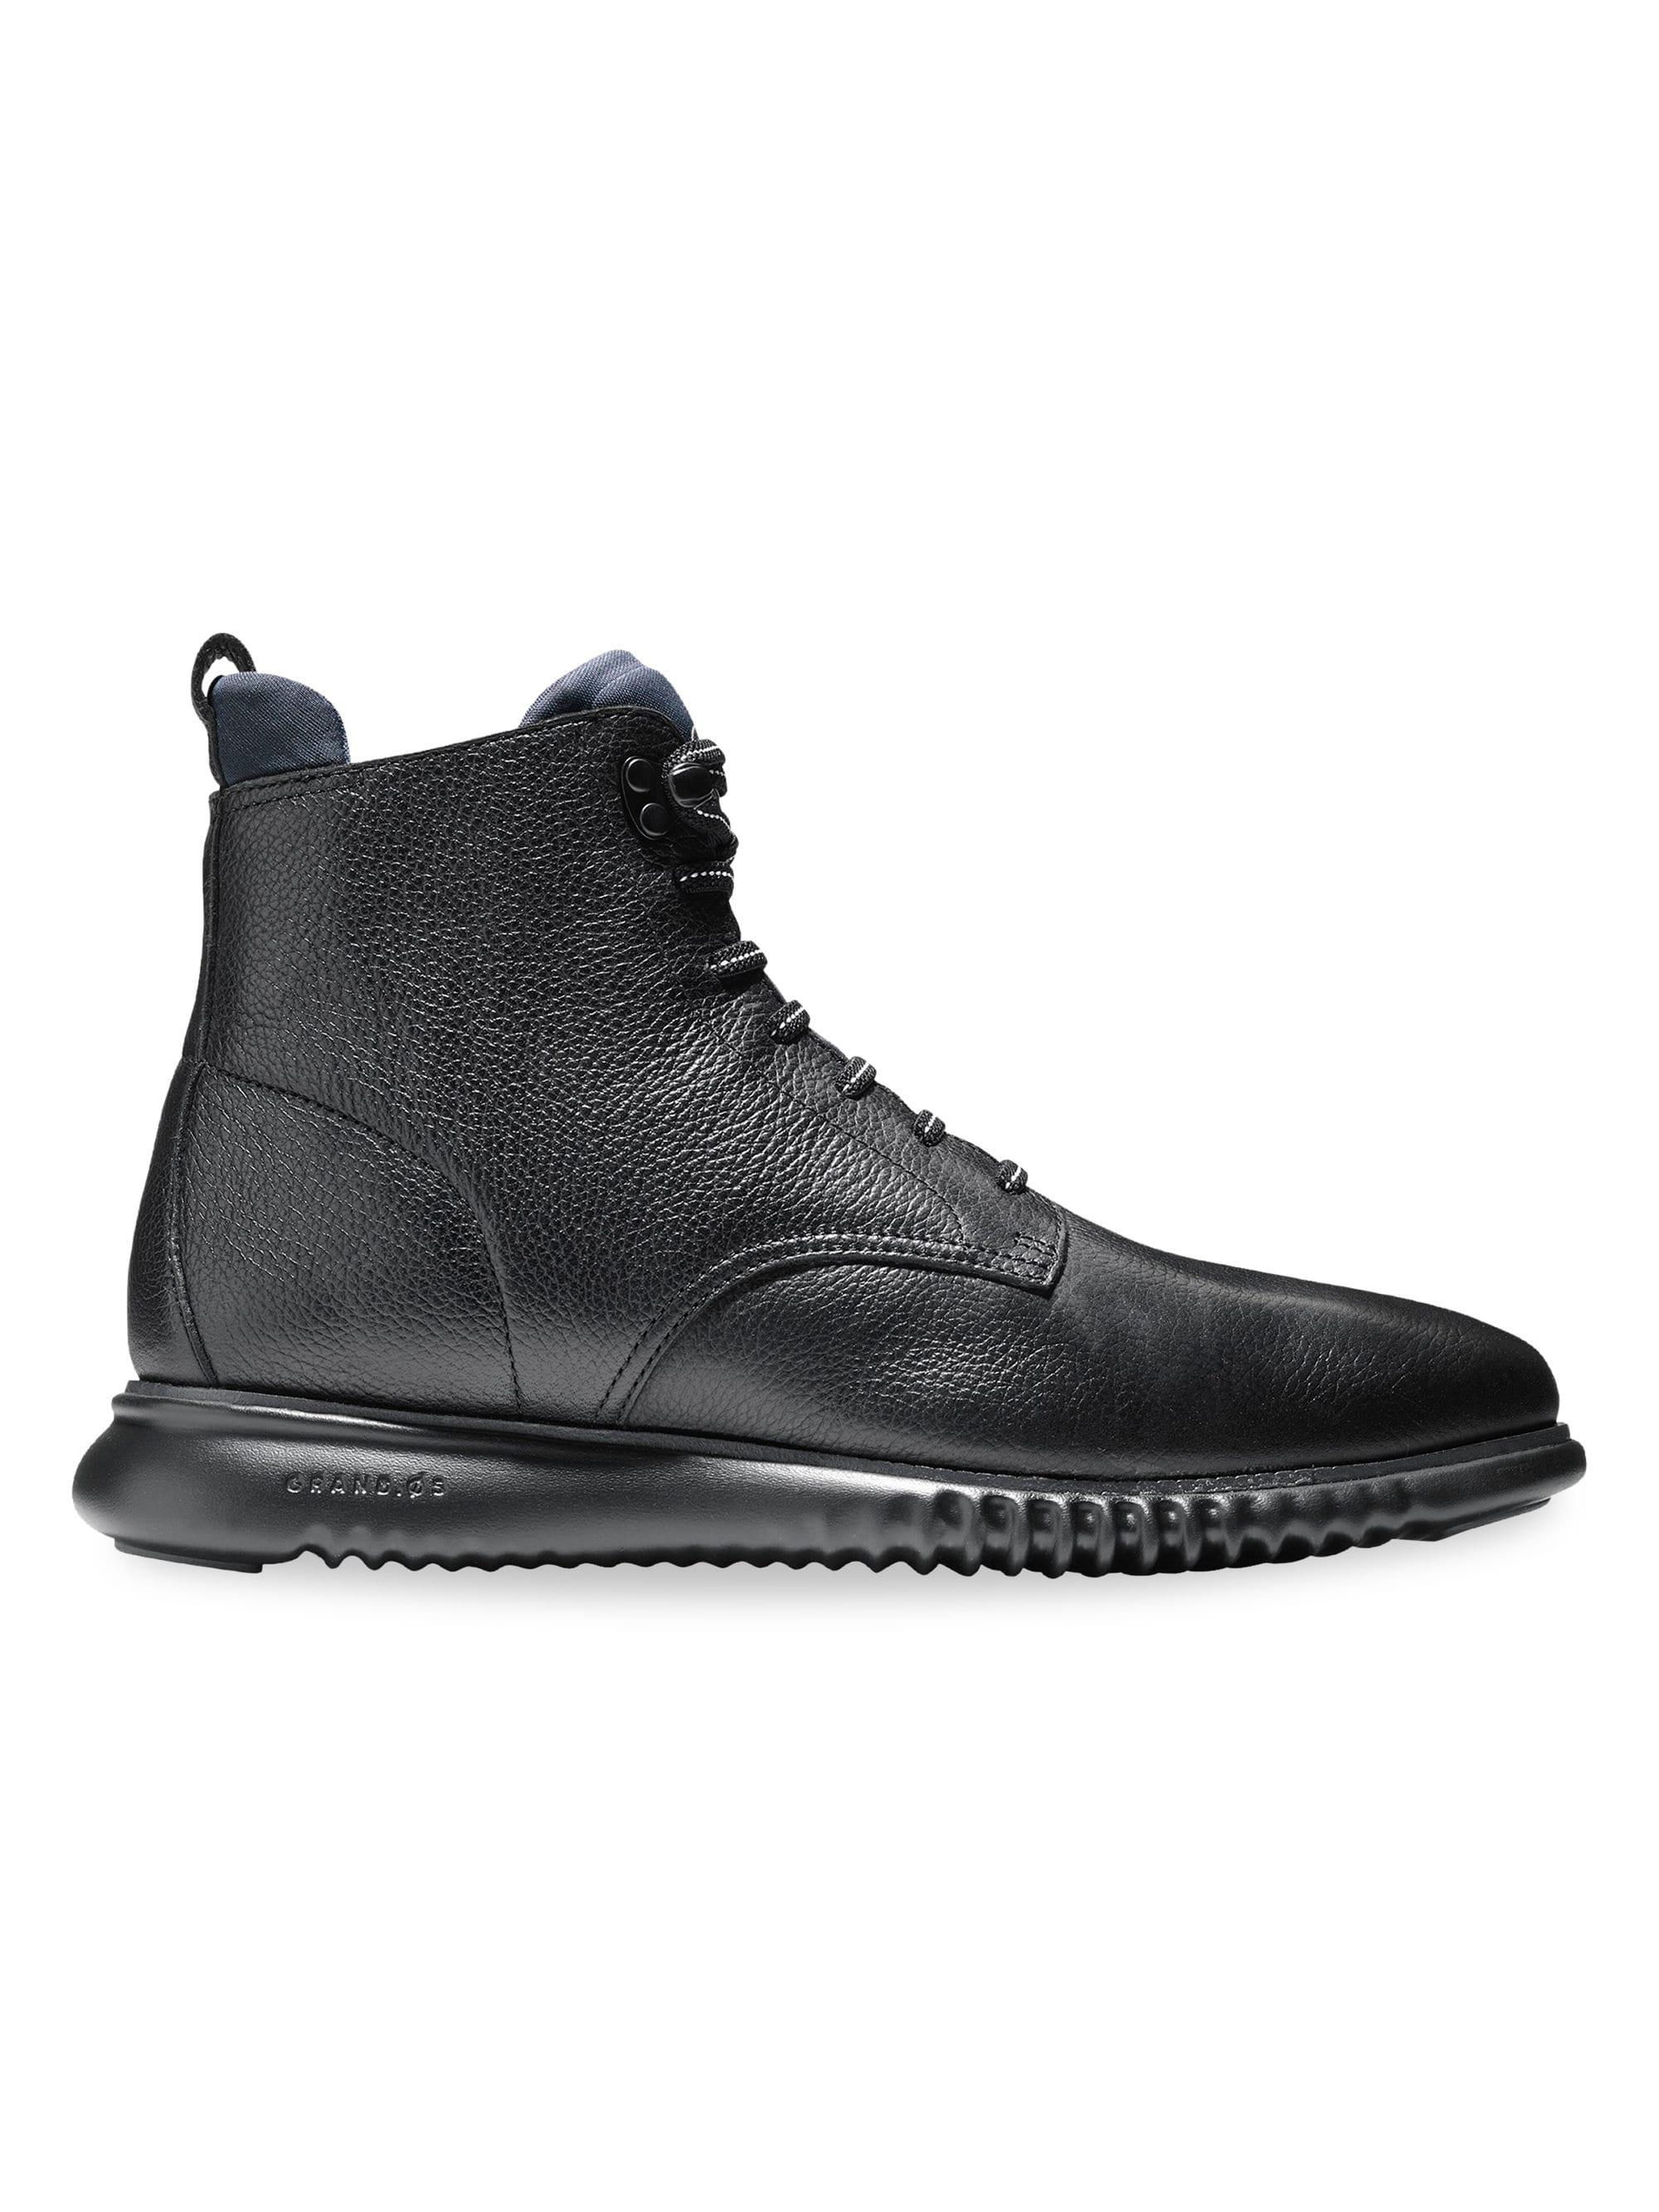 Cole Haan 2 Zerogrand City Leather Boots In Black For Men